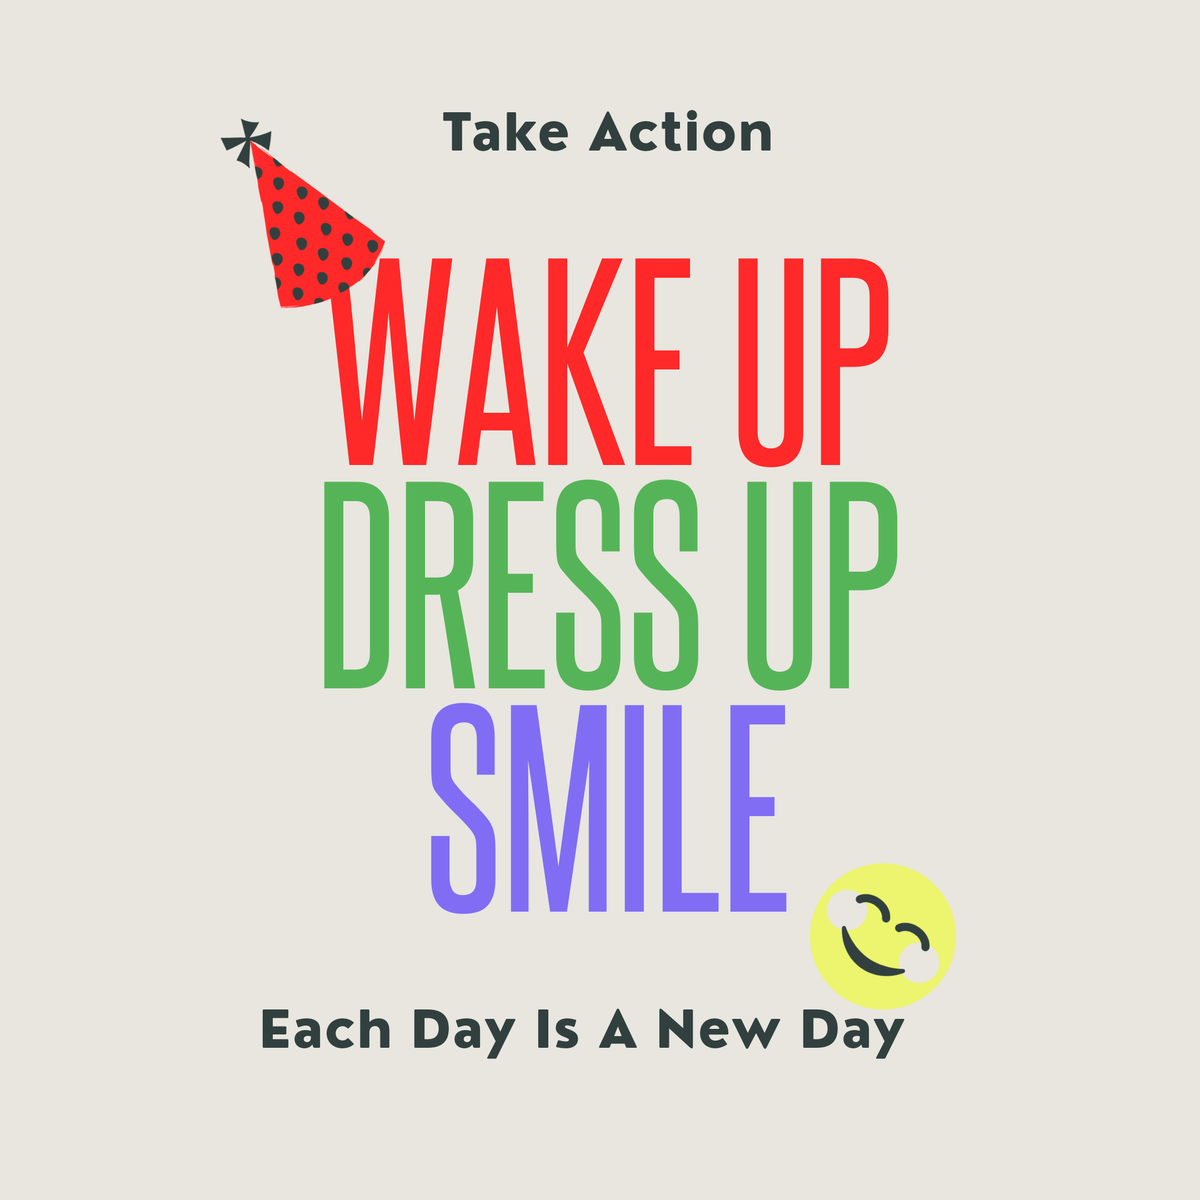 🌹Wake up, Dress up, Smile🌹  #positivevibes #positivethinking #mindfulness #mentalhealthmatters #mental #day #new #worth #imageconsultant #transformationtuesday #mindfulness #smile #coach #life #lifestyle #makeover #brand